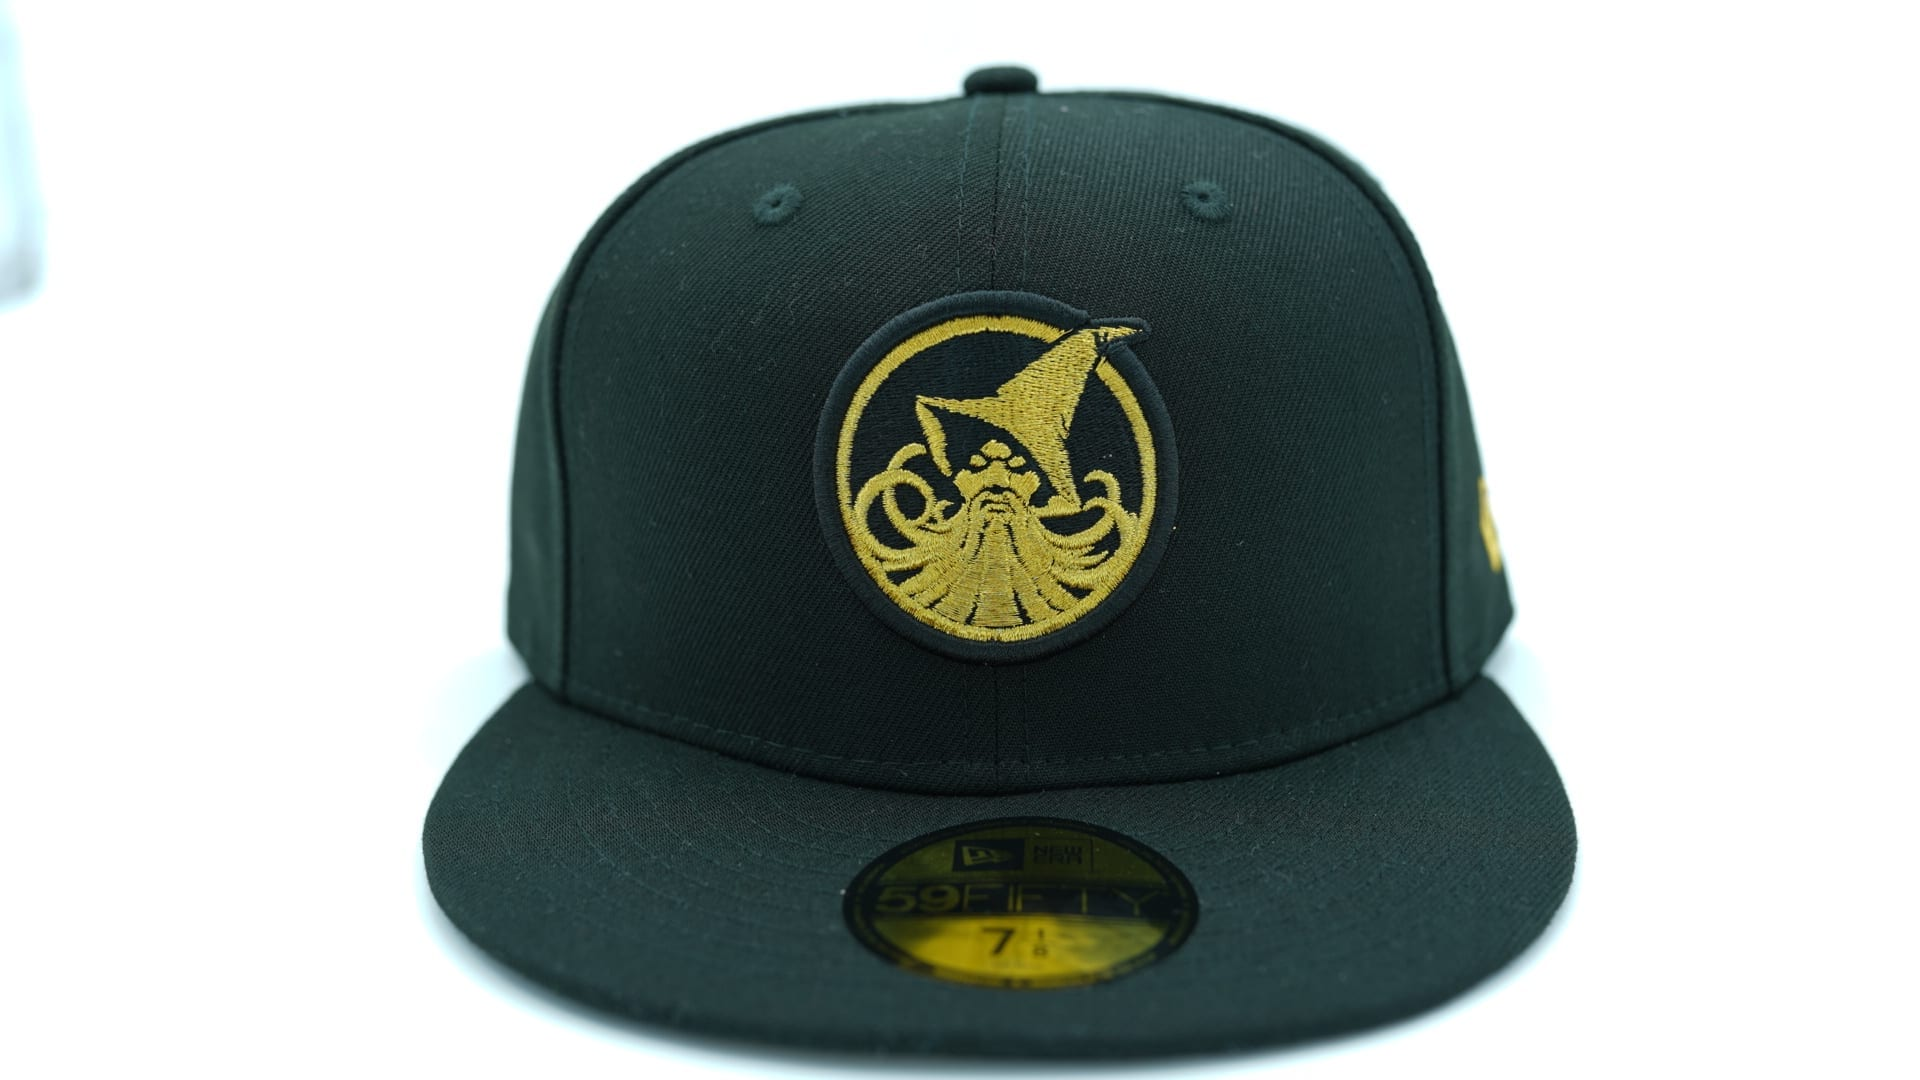 7cfc690bc19 NIXON s New Era 59Fifty fitted cap program is expanding just as fast as  their extensive watch collection. Introducing the Justice New Era 59Fifty  fitted